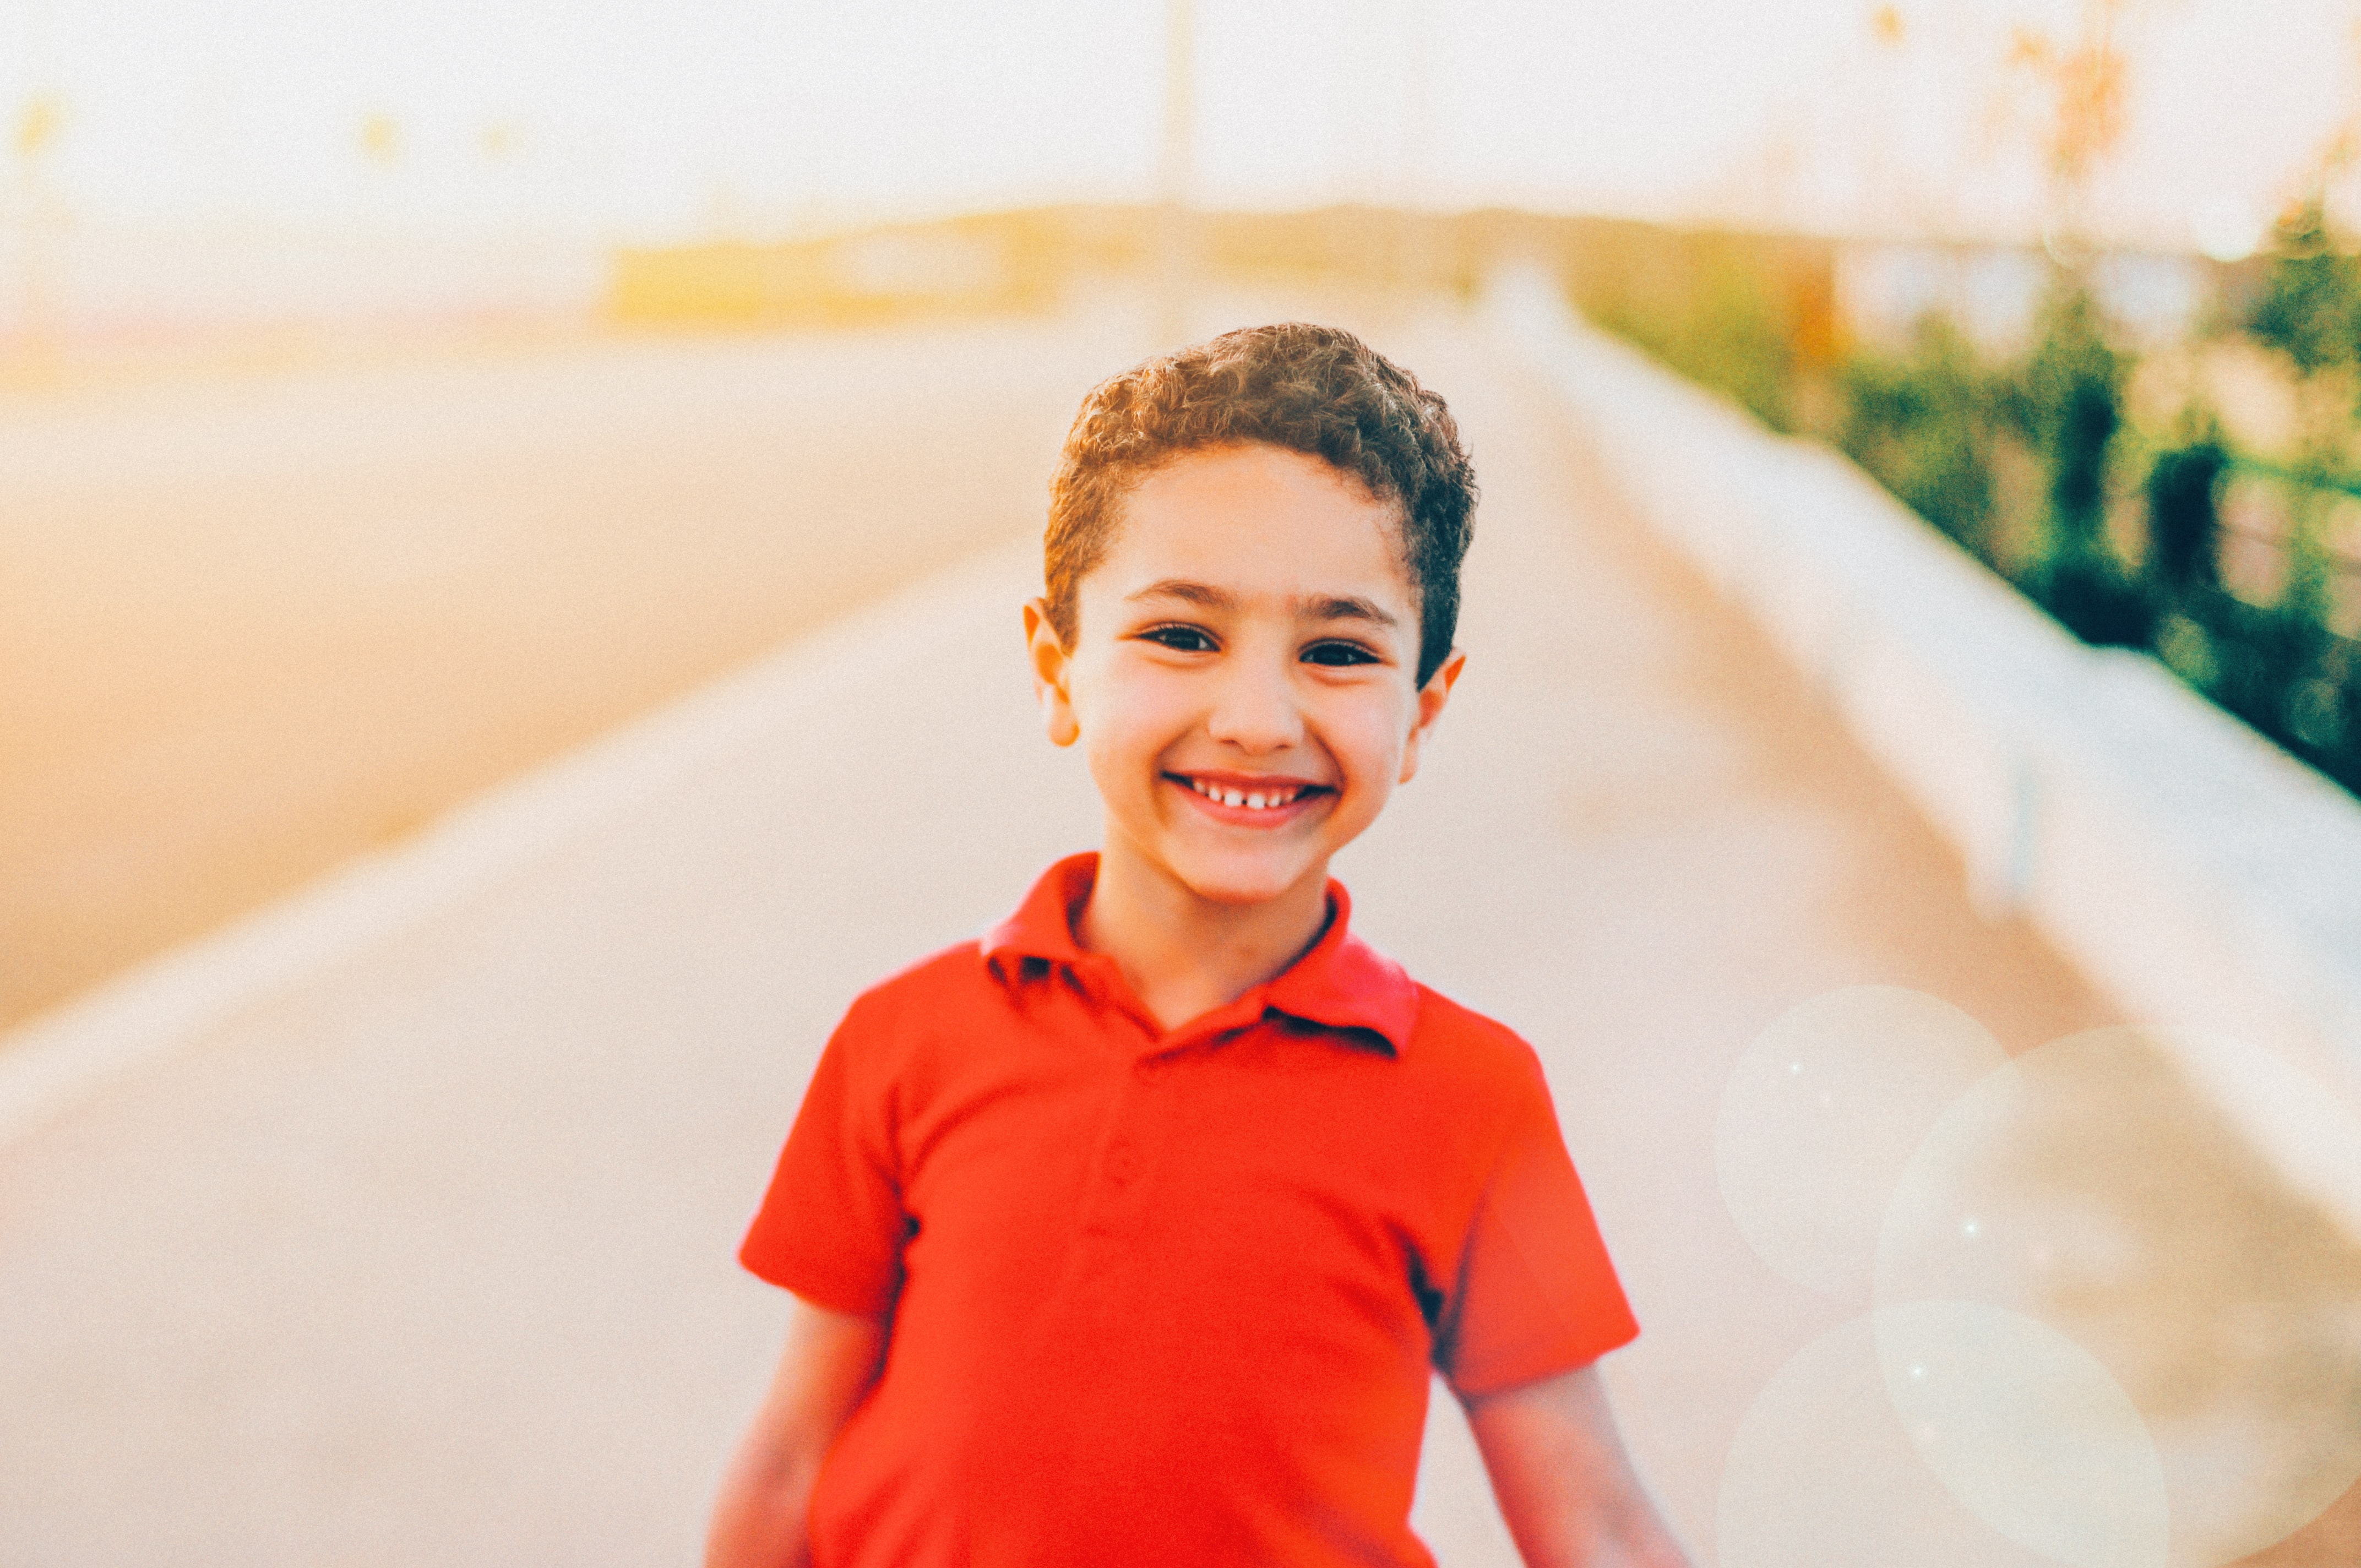 smiling boy wearing red polo shirt